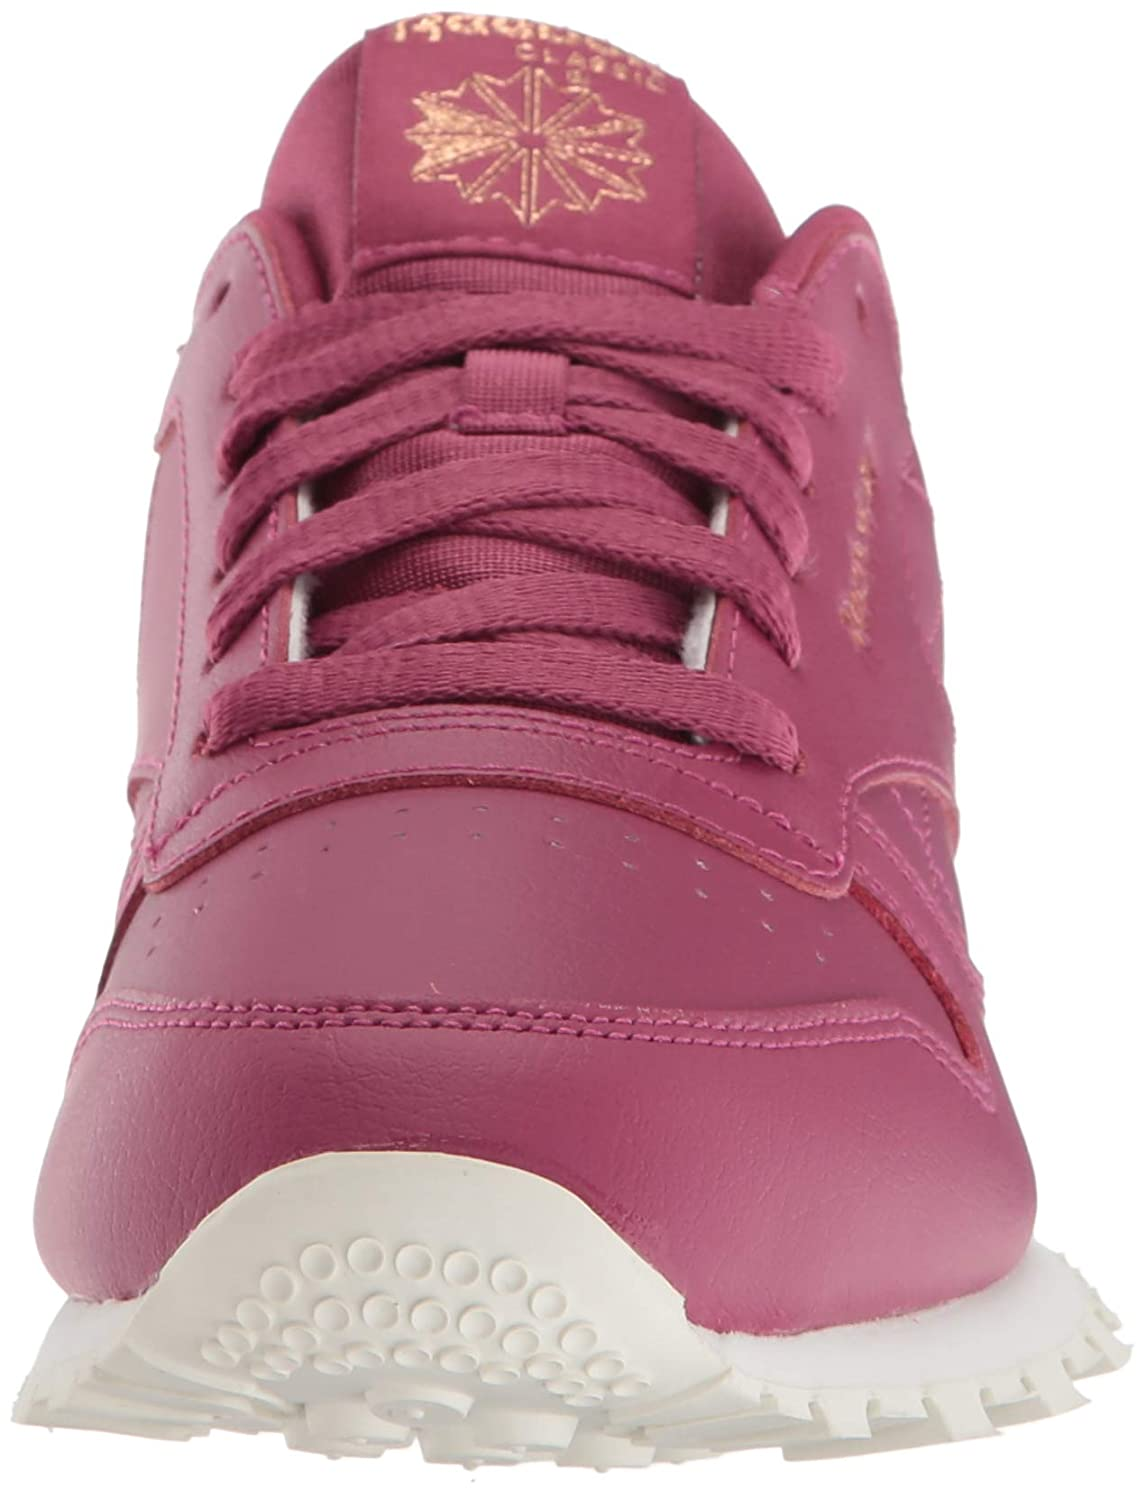 Reebok Unisex Kids Classic Leather Sneaker Reebok Unisex Kids/' Classic Leather Sneaker